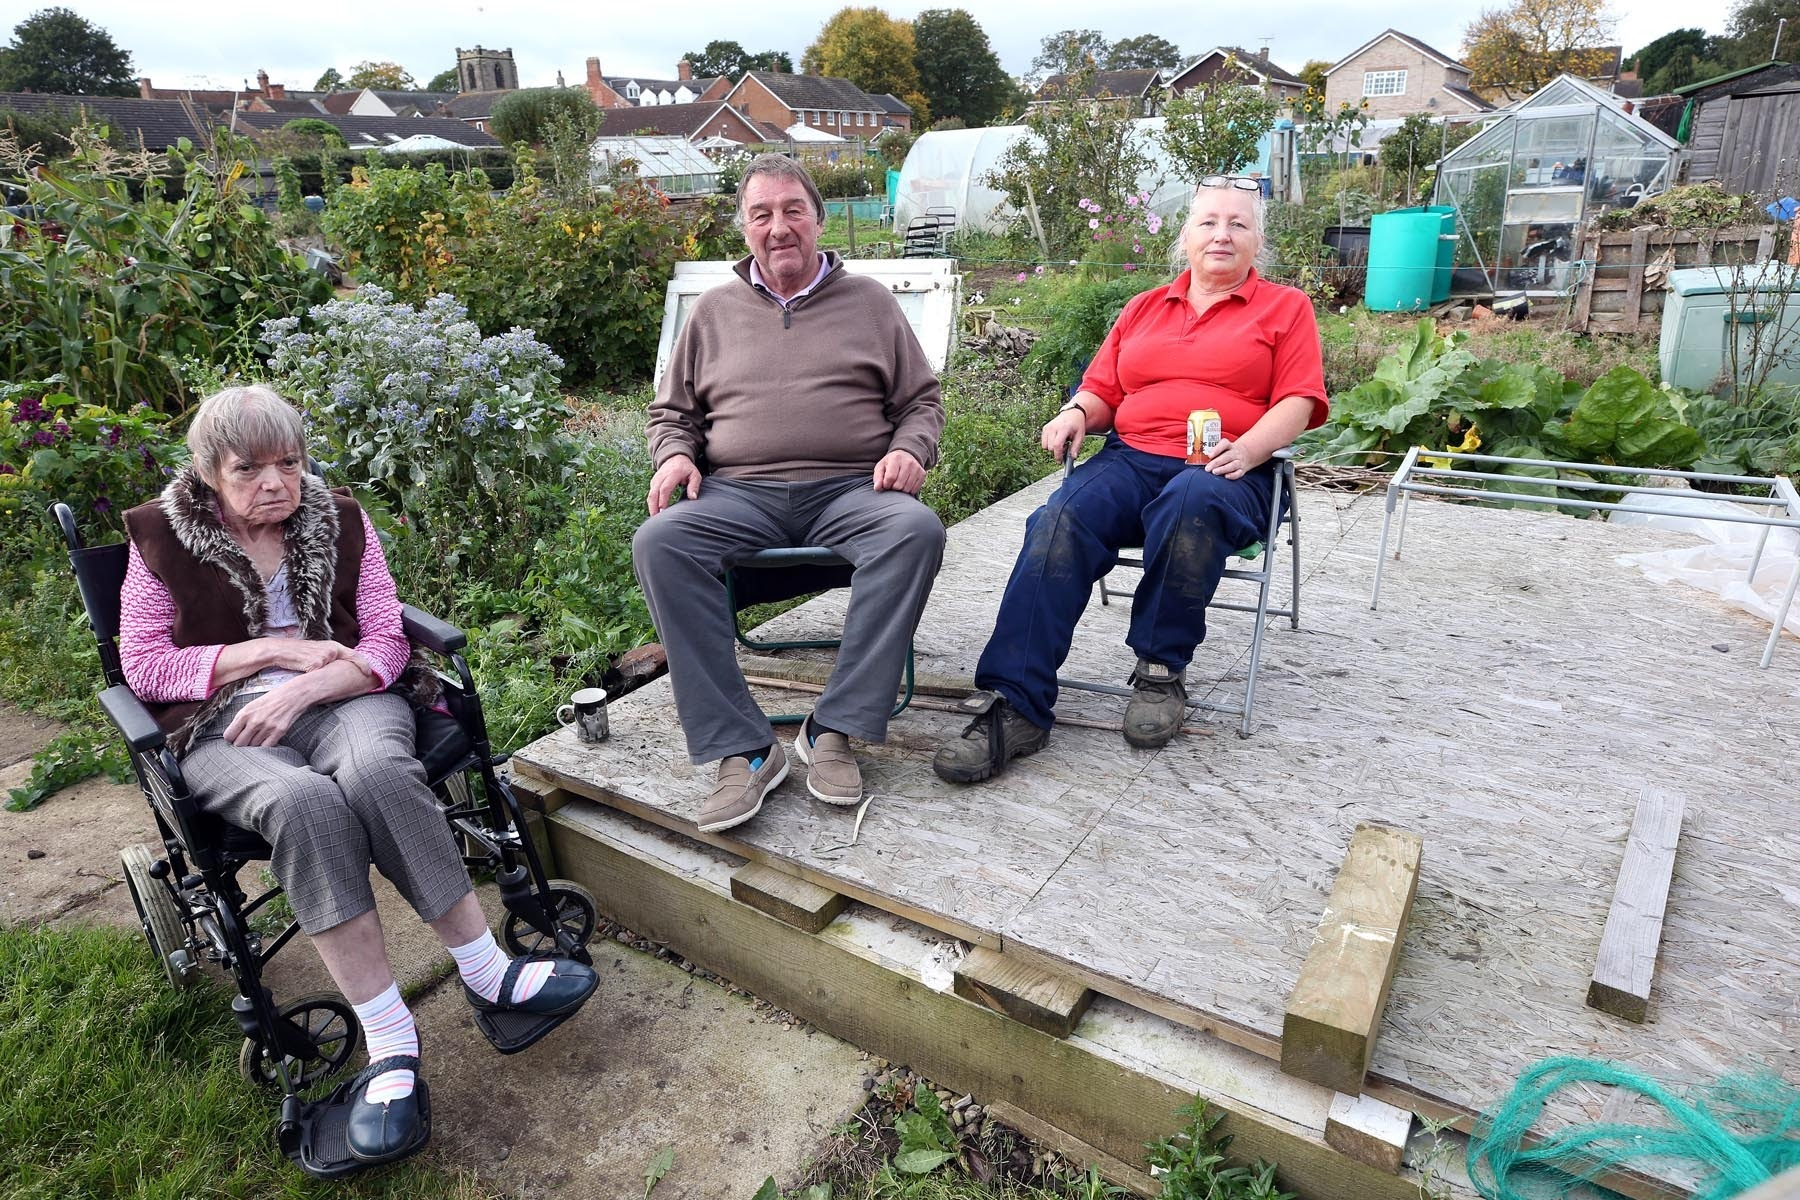 ROW: Residents have been given an eviction notice after complaining about being refused permission to build a summer house for disabled people to use. At the Hurworth allotments are Susan and John Middlemiss and Maureen Powles Picture: CHRIS BOOTH